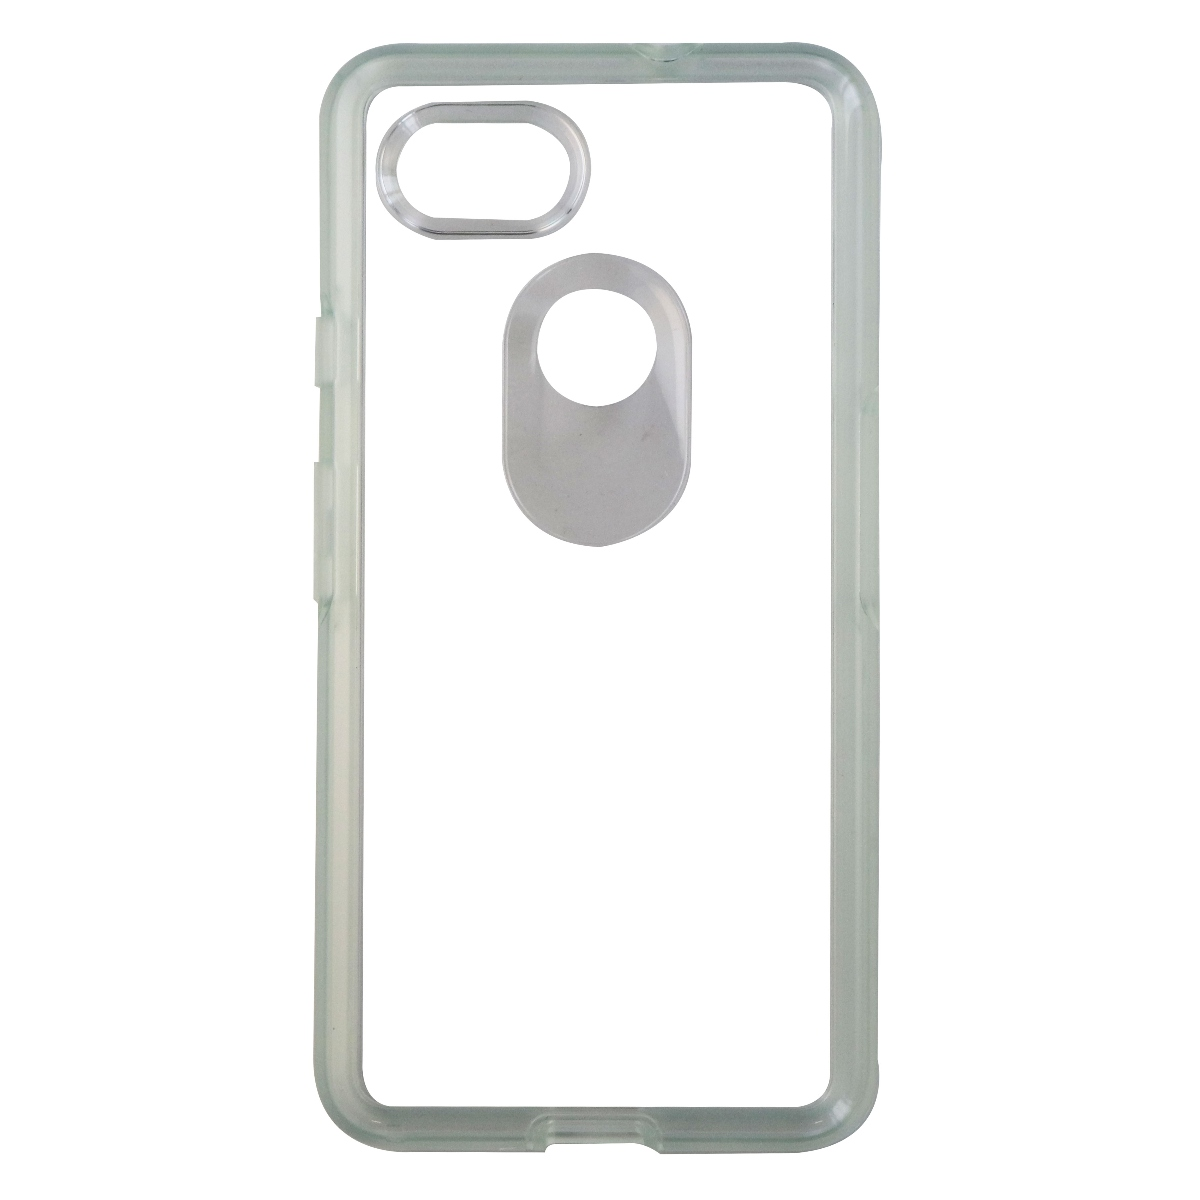 OtterBox Symmetry Series Hybrid Hard Case Cover for Google Pixel 2 XL - Clear